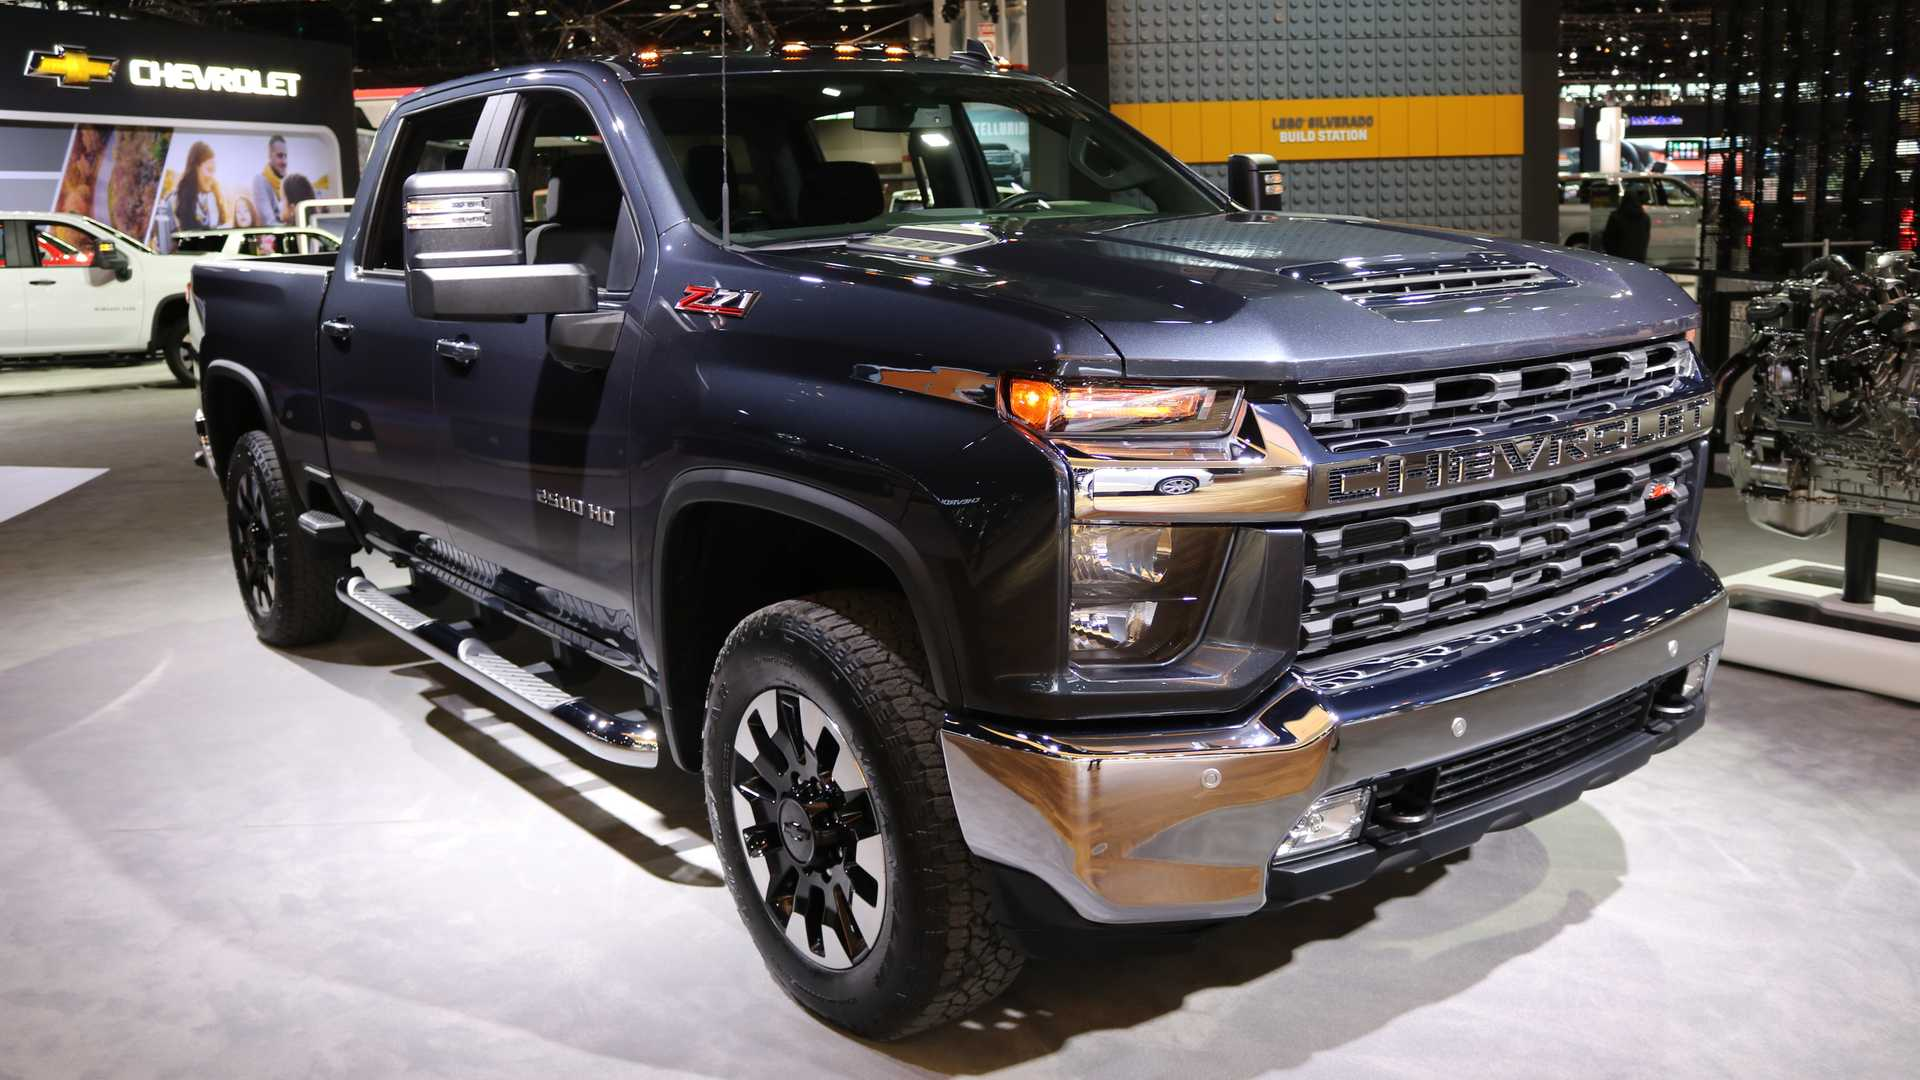 33 All New When Do The 2020 Chevrolet Trucks Come Out Performance by When Do The 2020 Chevrolet Trucks Come Out